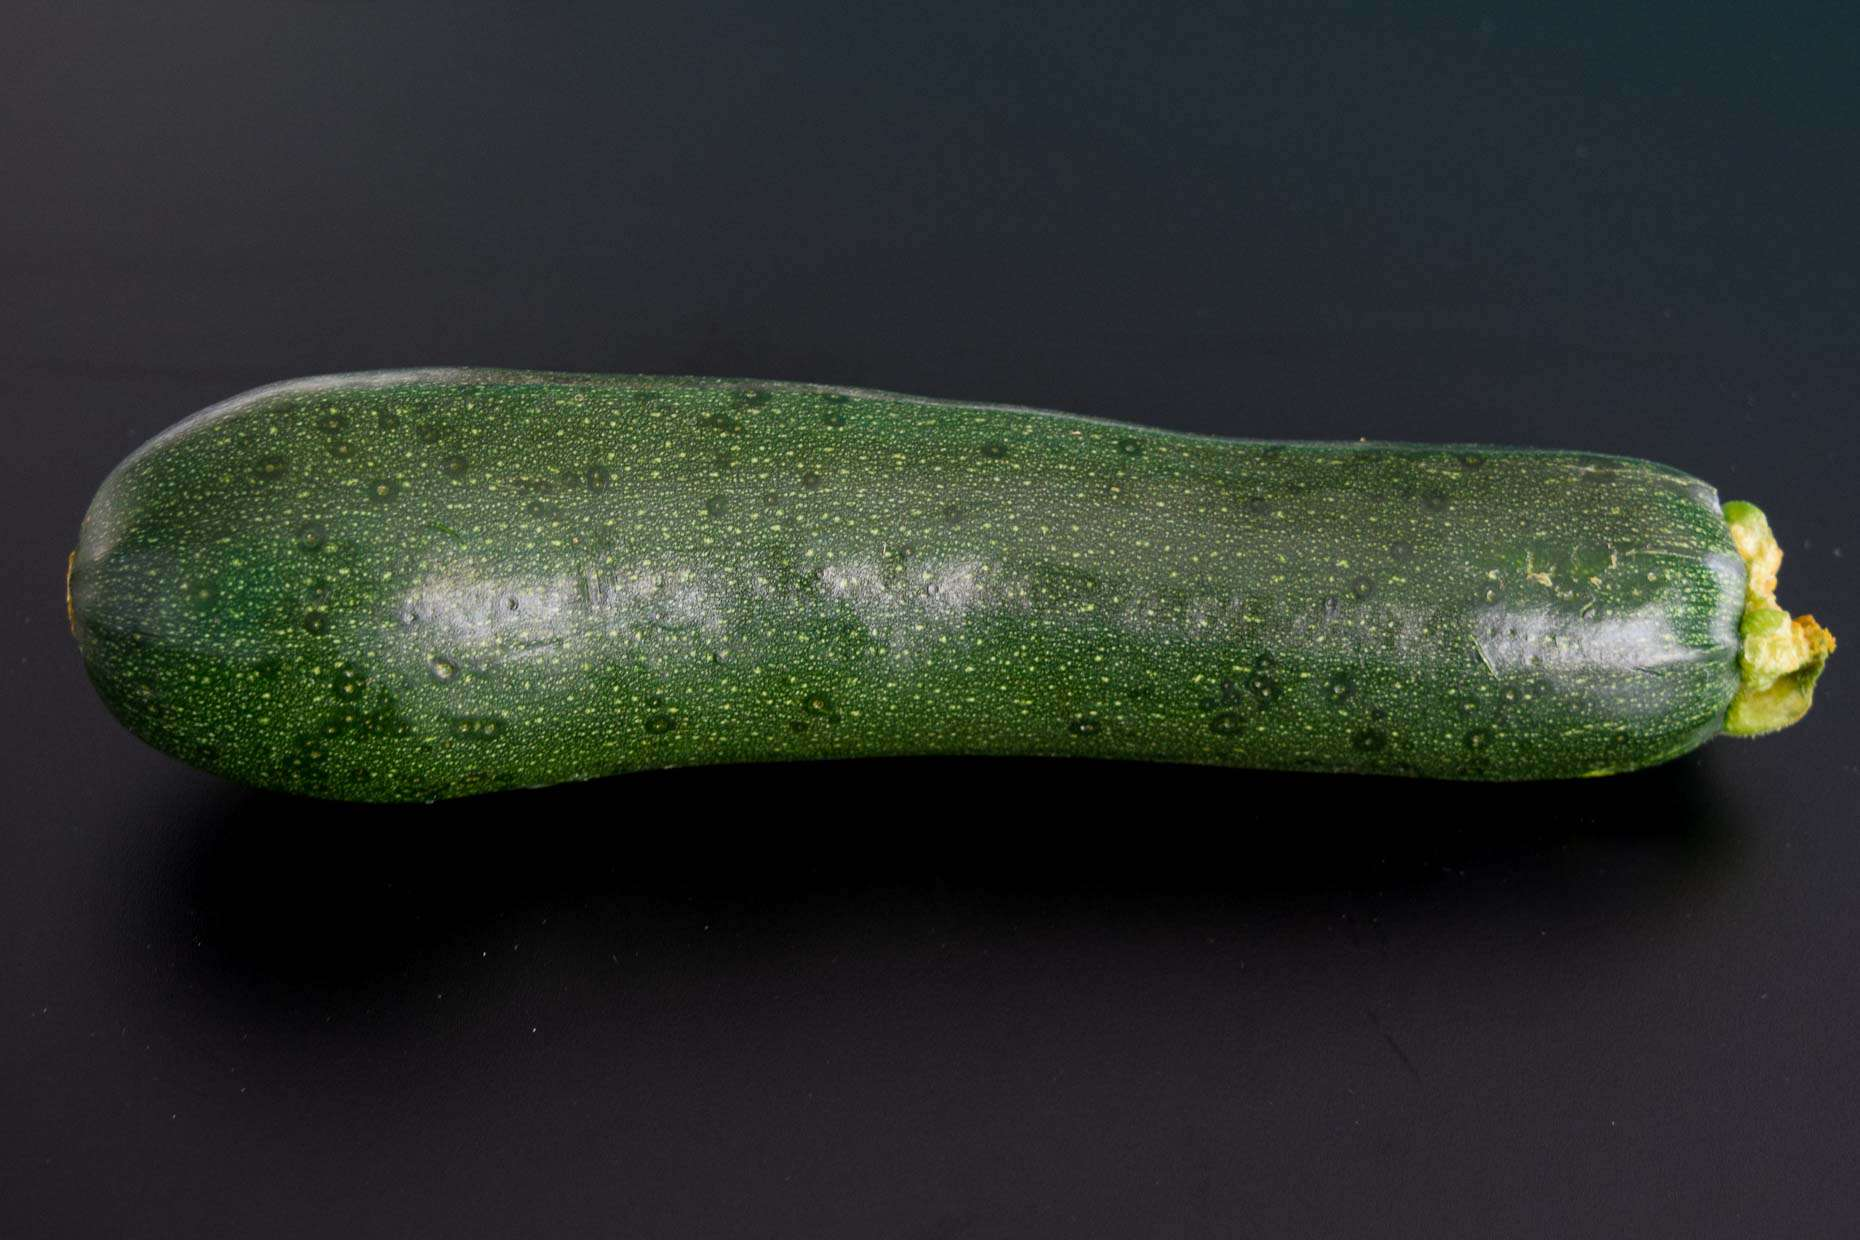 Zucchini on black background